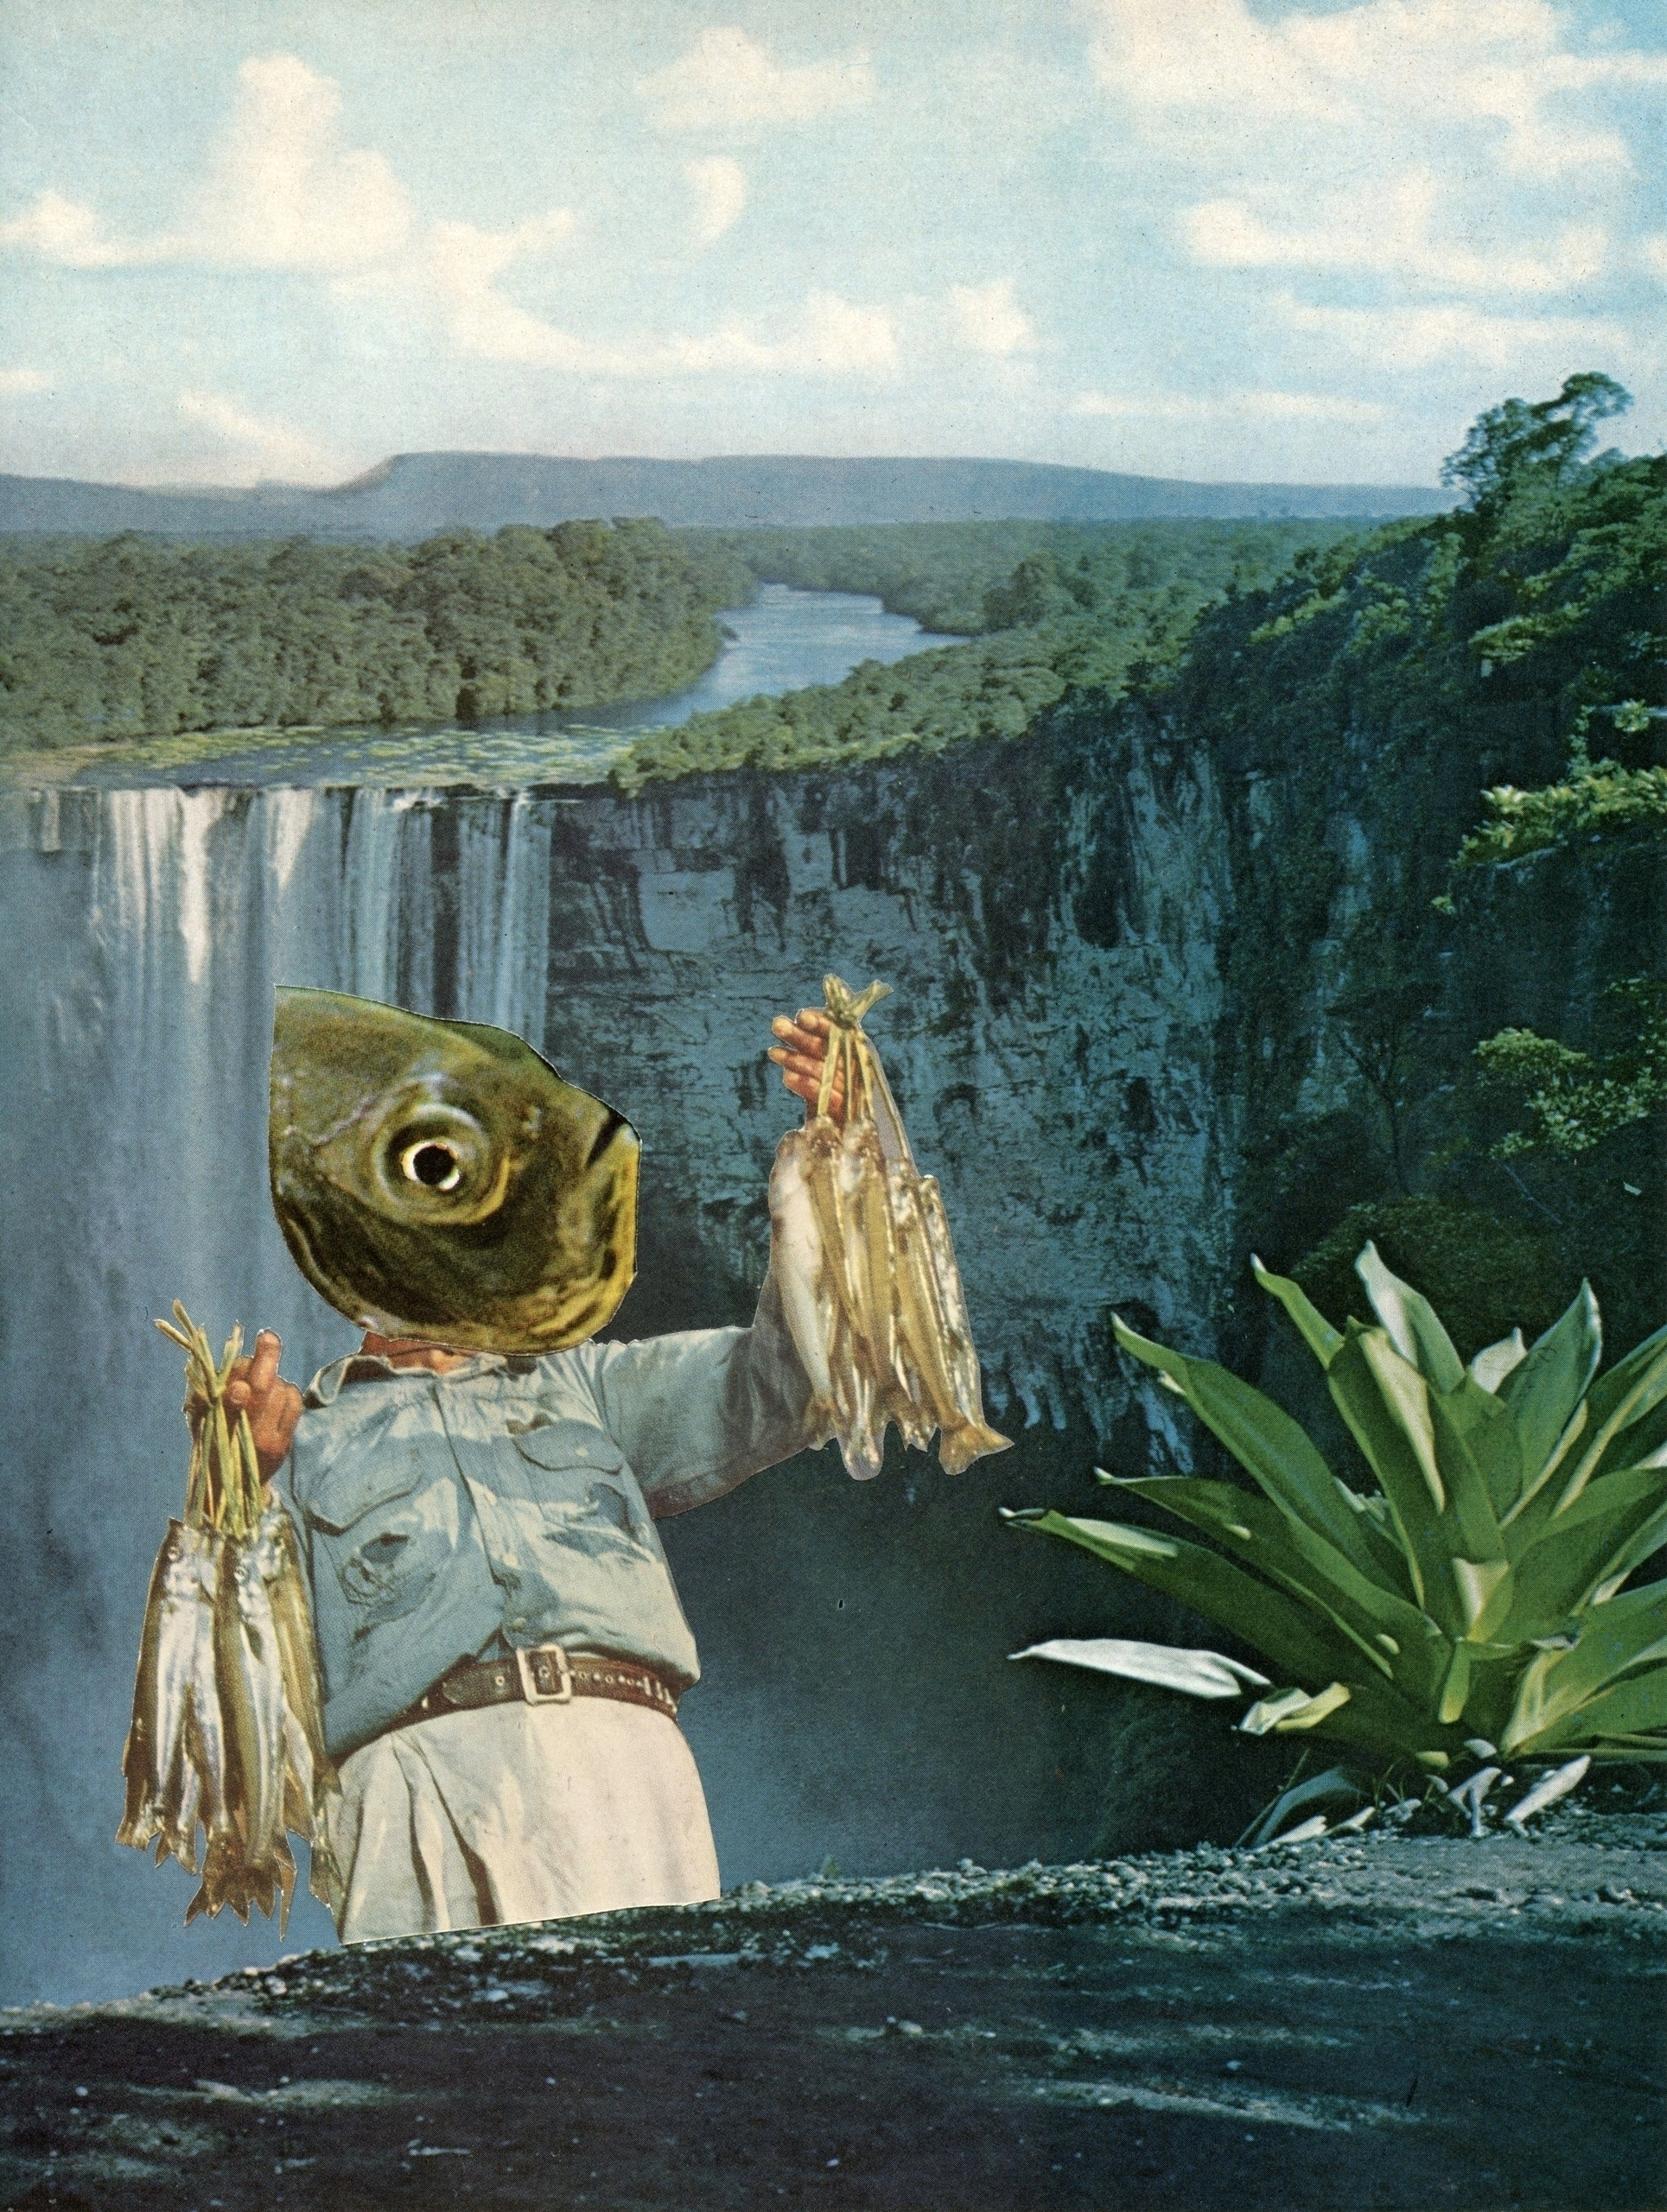 Collage Bep Broos - contemporarycollage#collageart#illustration#art#collage#collageartist#cutandpaste#analogcollage#analogcollageart#arte#collageoftheday#papercollage#surrealism#fish#fisherman#waterfall#ellocollage#elloart - bepbroos | ello